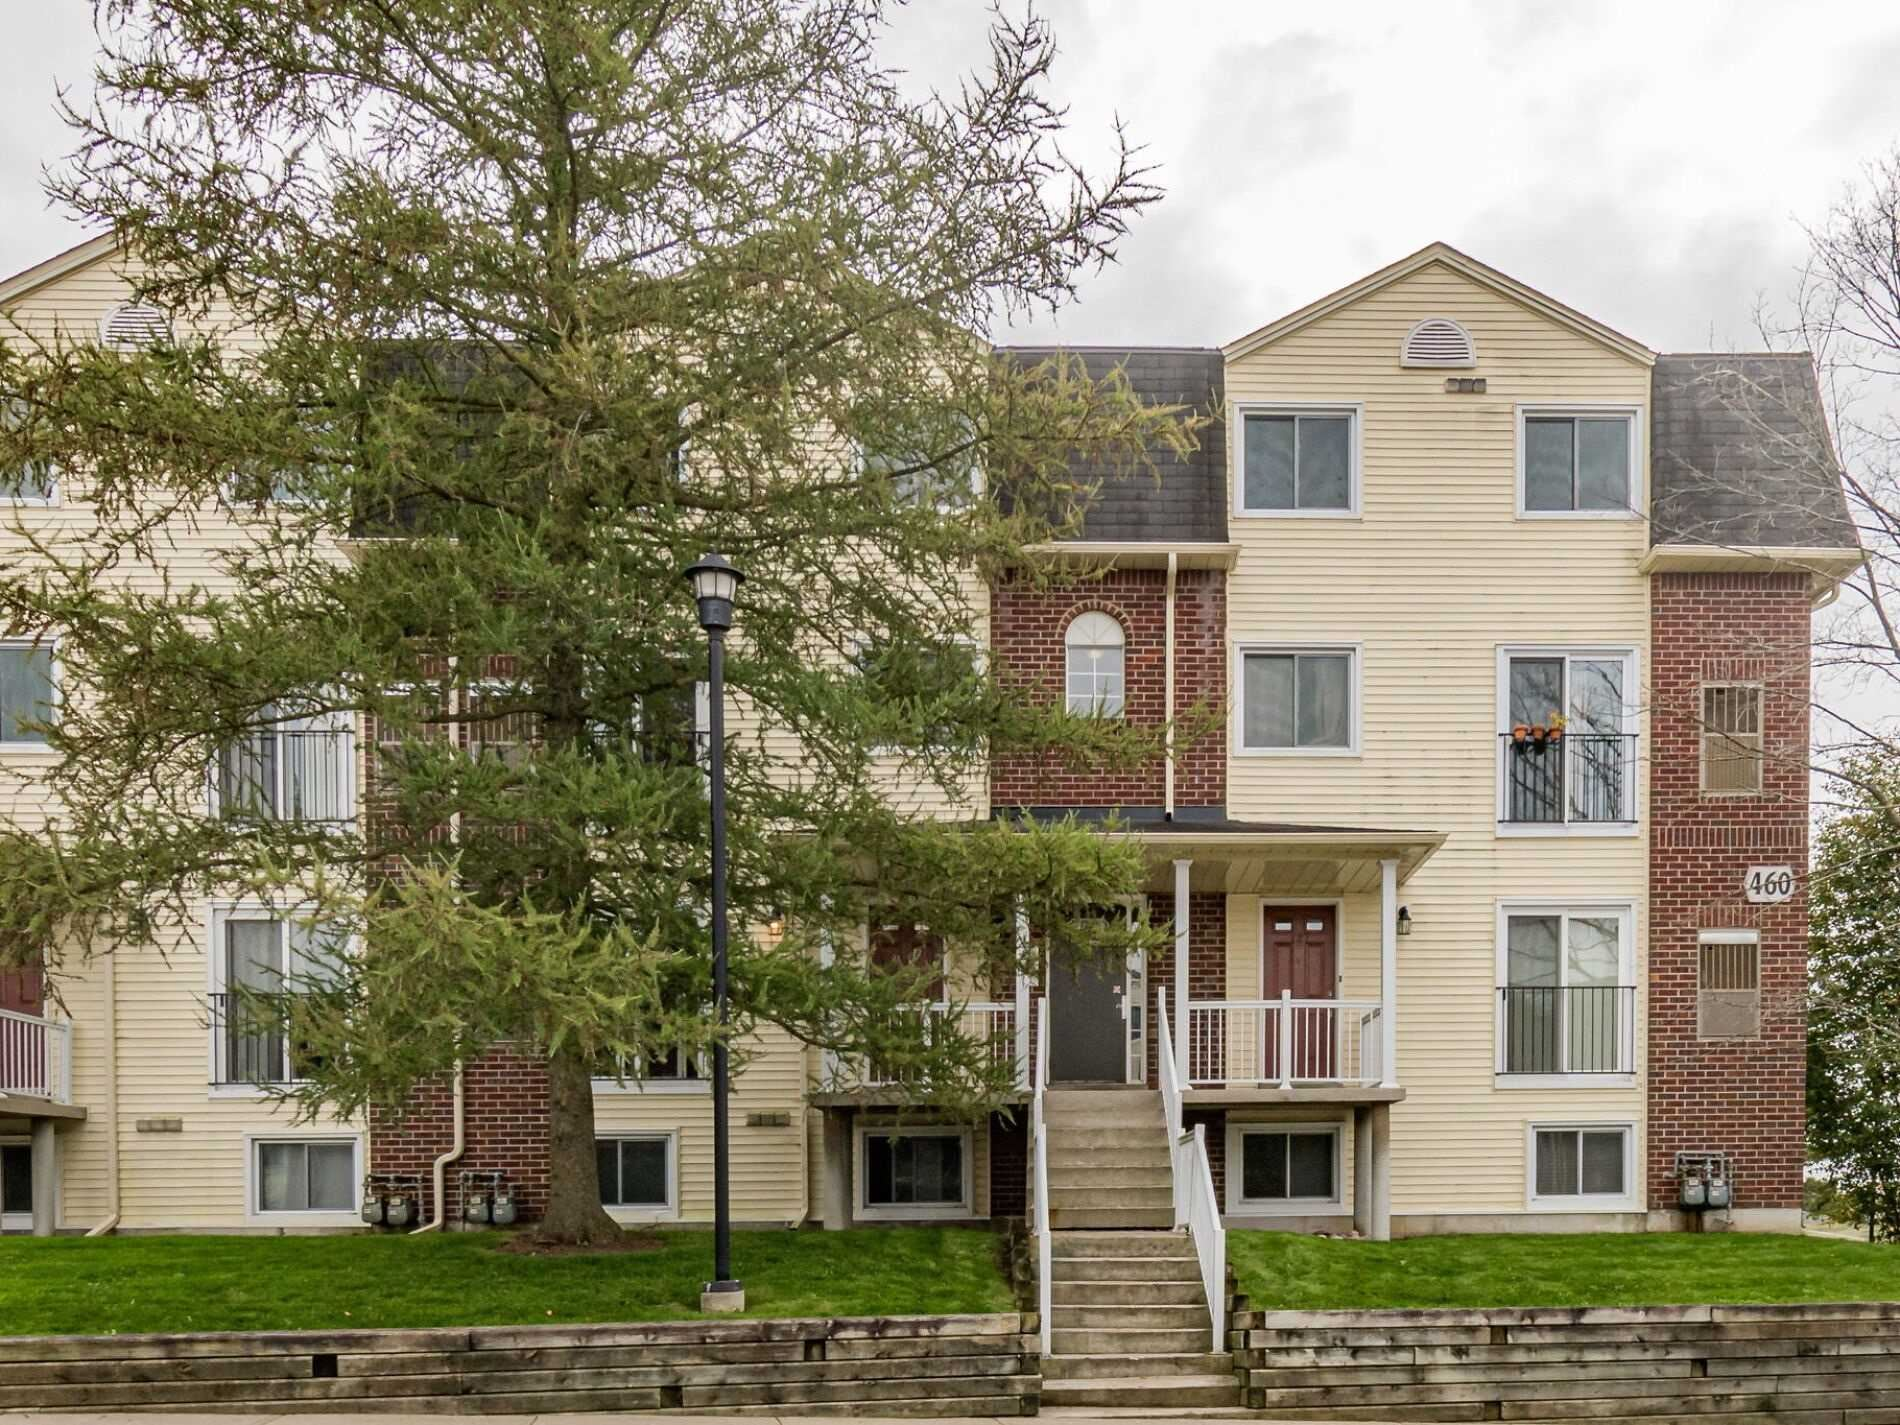 460 Janefield Ave #128, Guelph, ON N1G 4R8 - MLS#: X5401394